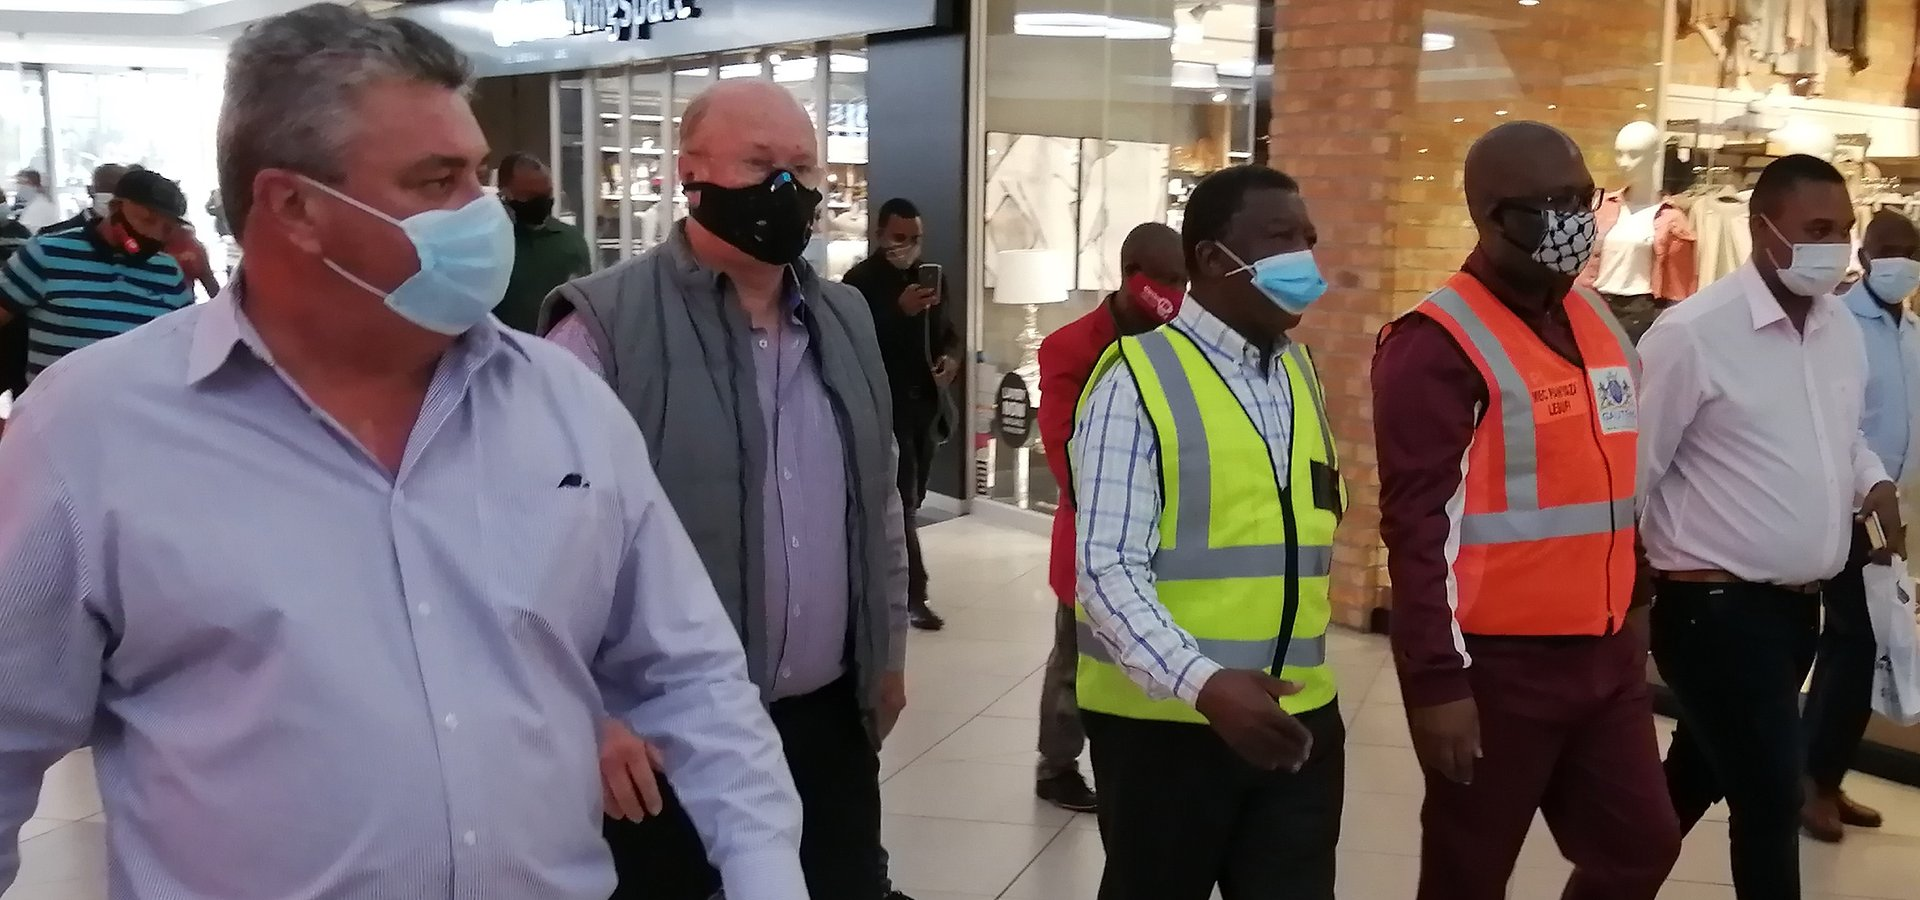 MEC's visit confirms that Vaal Mall has gone the extra mile for safety